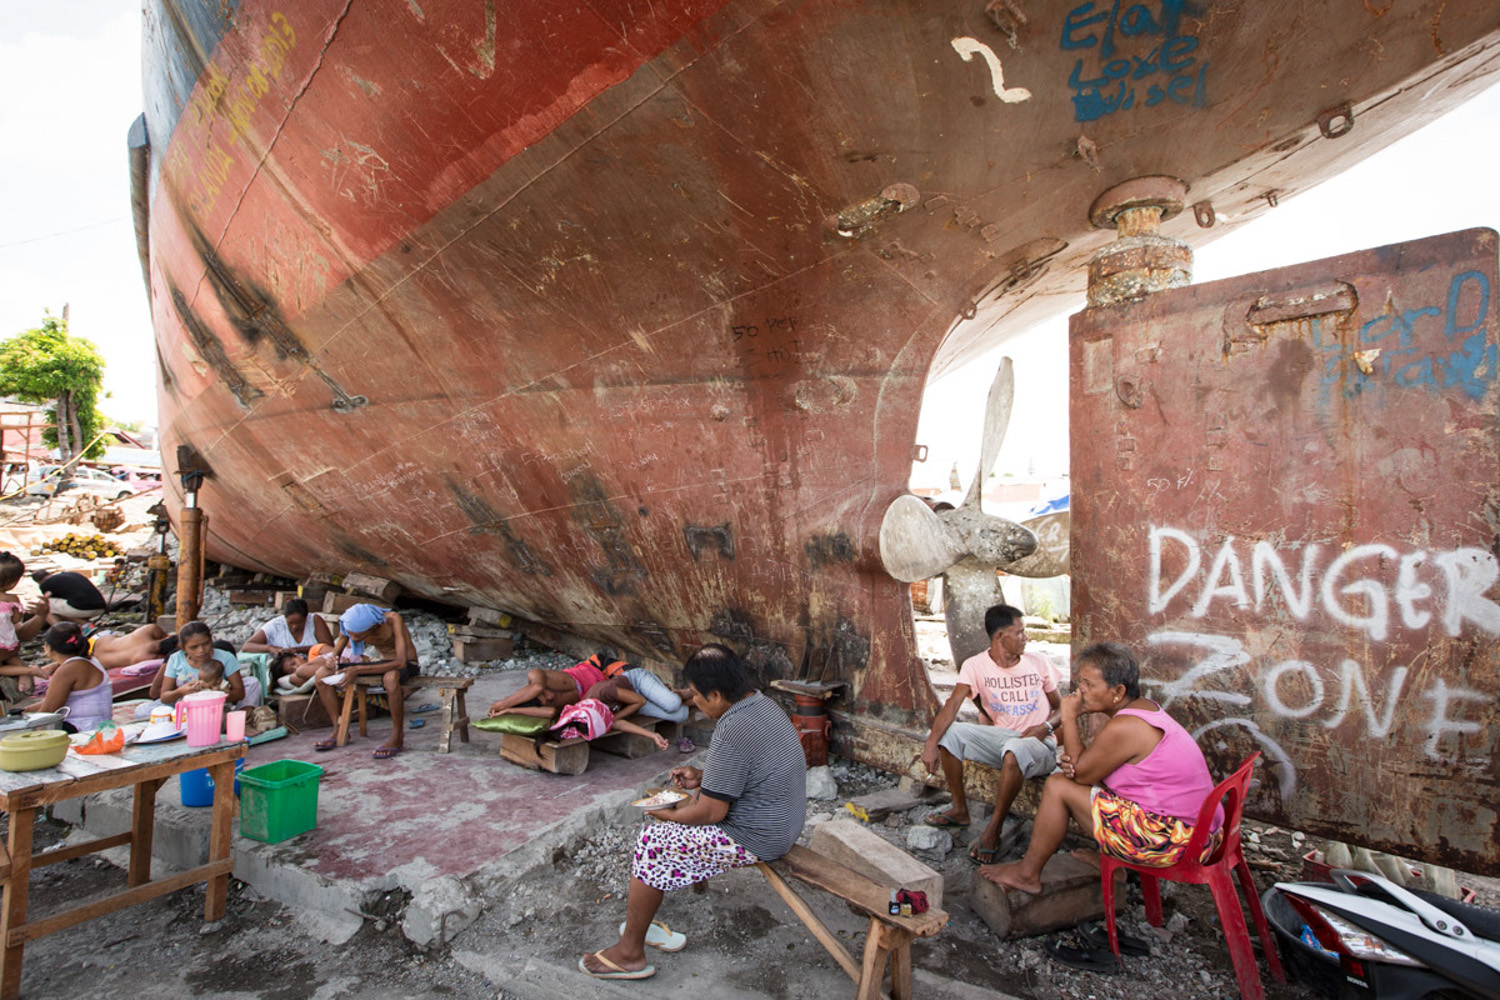 Some locals take shade underneath a boat that was washed onto shore during Thyphoon Yolanda, it was about half a mile in, shows how strong the typhoon was